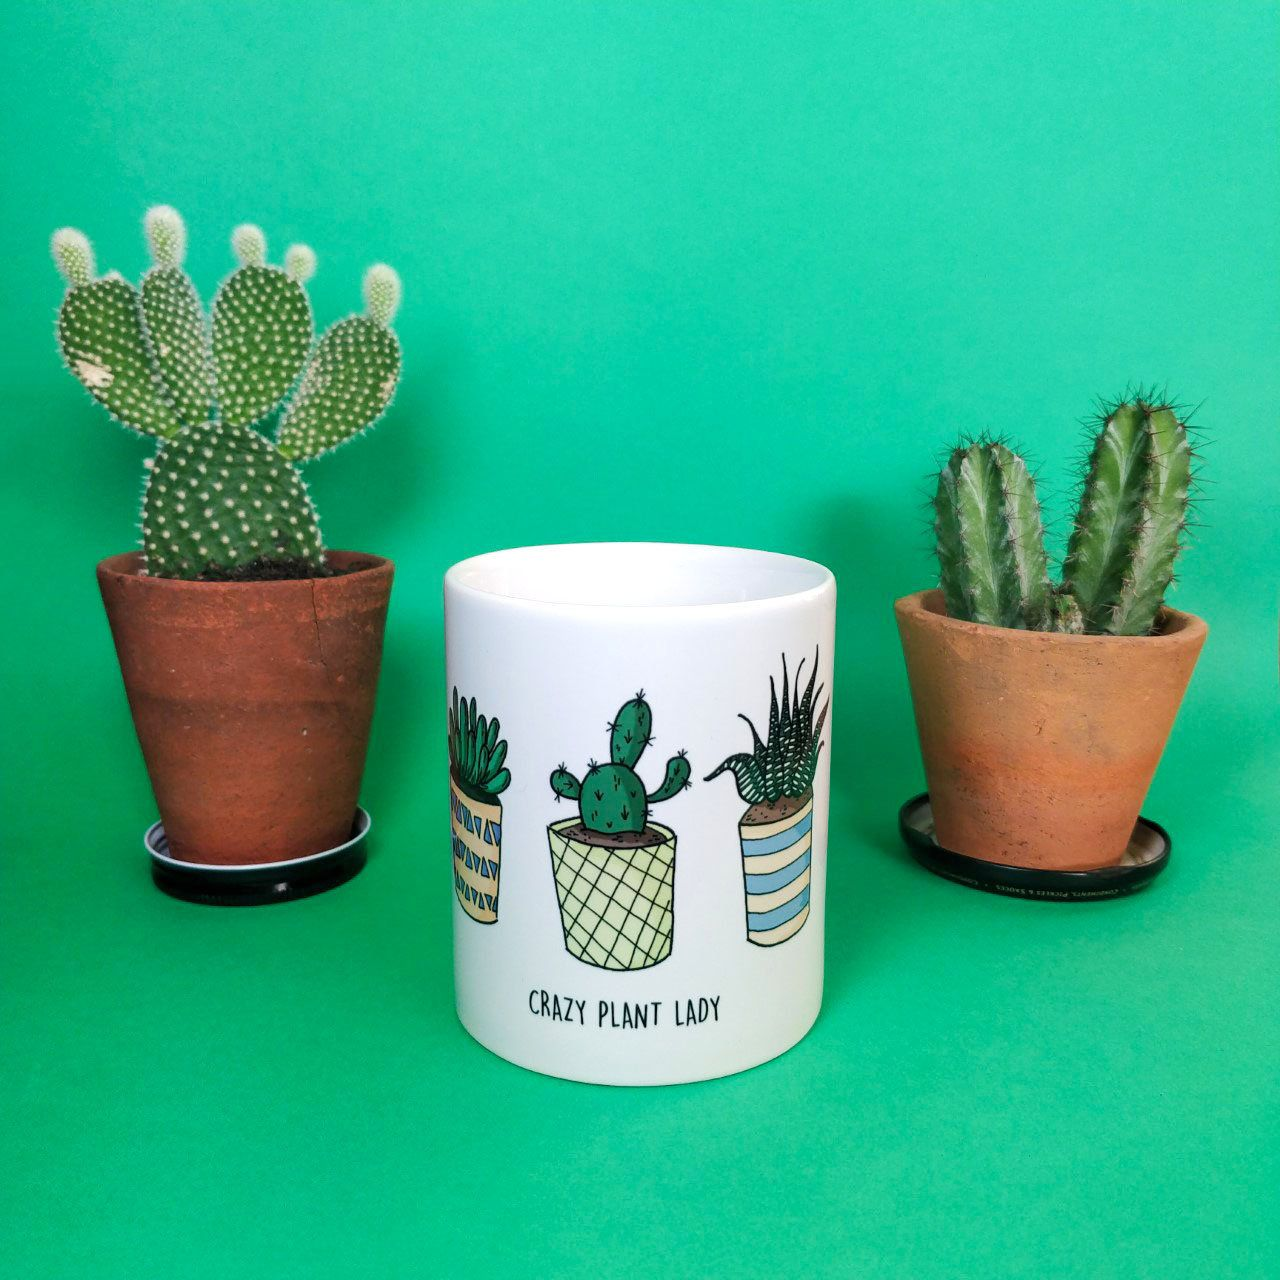 Crazy Plant Lady Mug Coffee Birthday Gift Present Gardening Mugs For Gardeners Lovers Plants By